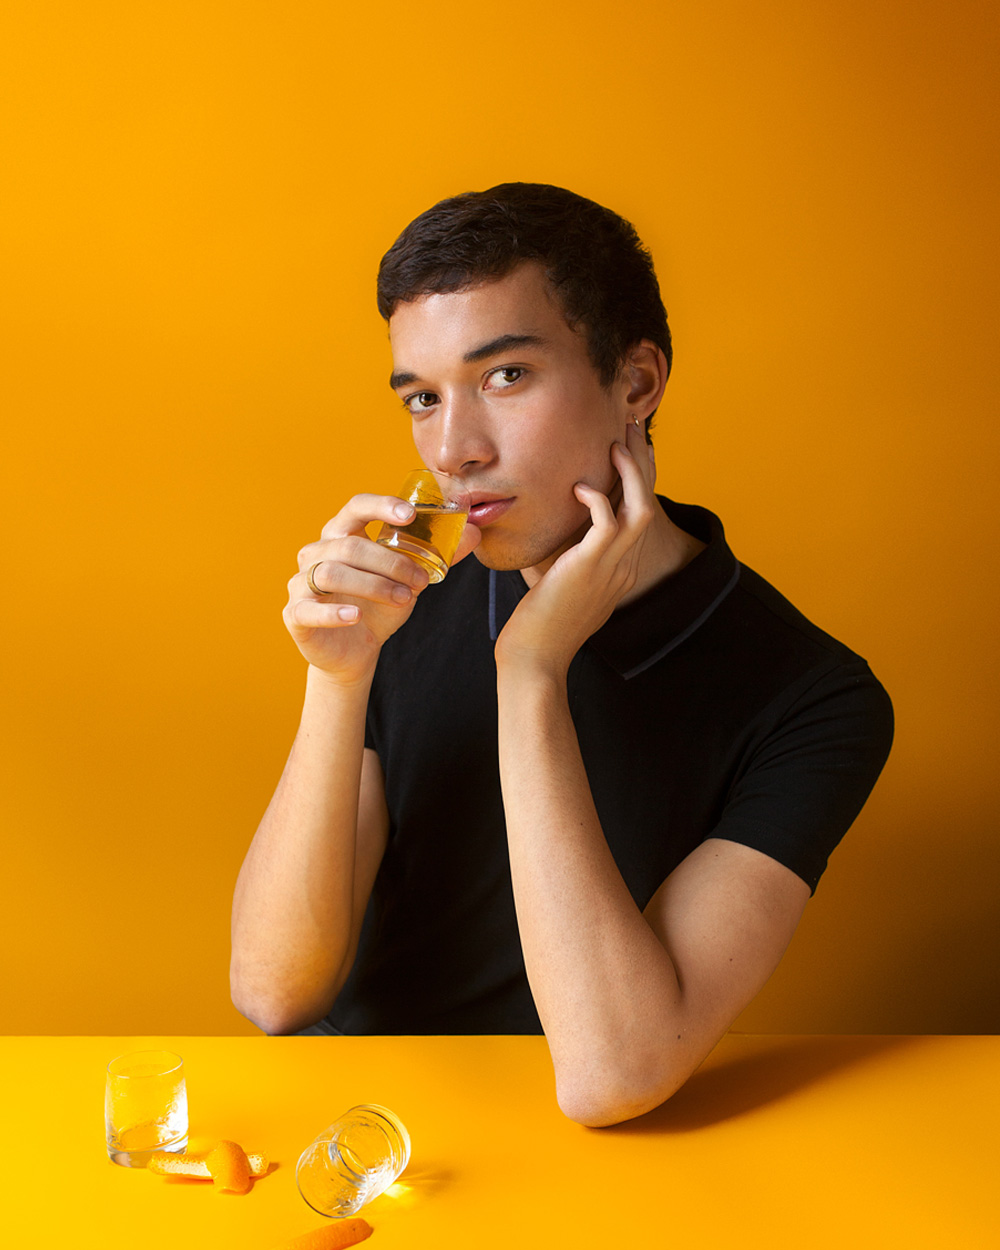 Ruben Colindres    @ruweng       Occupation:  Biochemistry Student, Model   Wellness in a word:  Contentedness